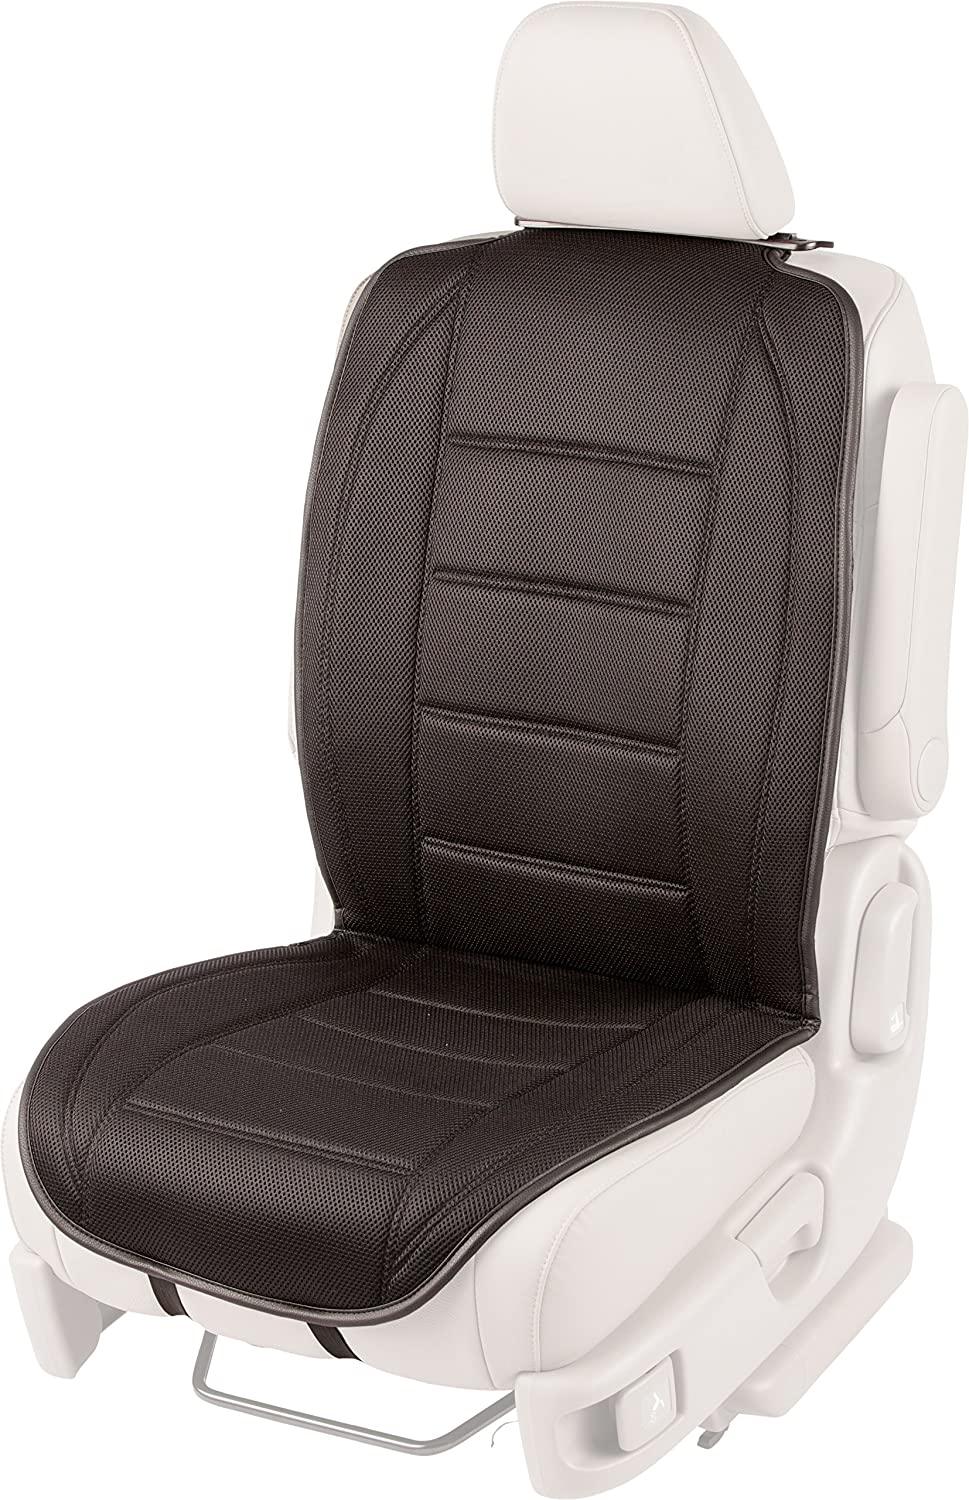 AirFlex 60-274005 Full Back Seat Cover with Fixed Air Compression, Black